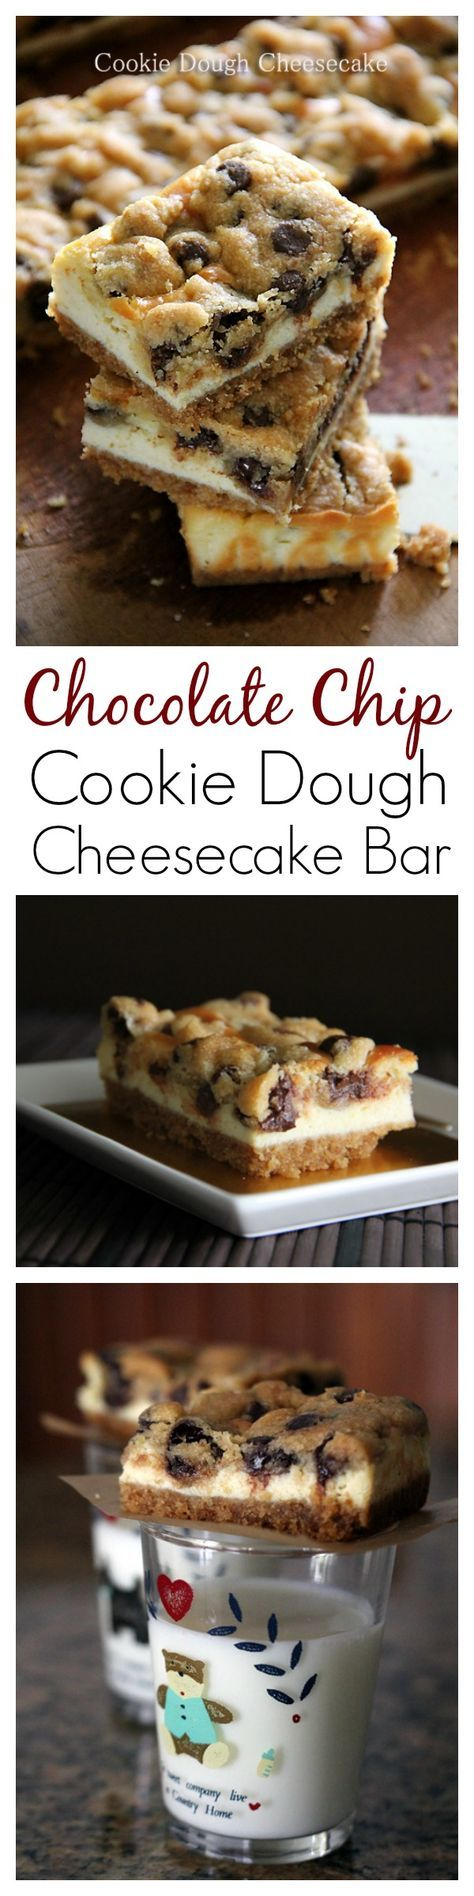 Chocolate Chip Cookie Dough Cheesecake Bar recipe, the BEST cheesecake bar EVER!